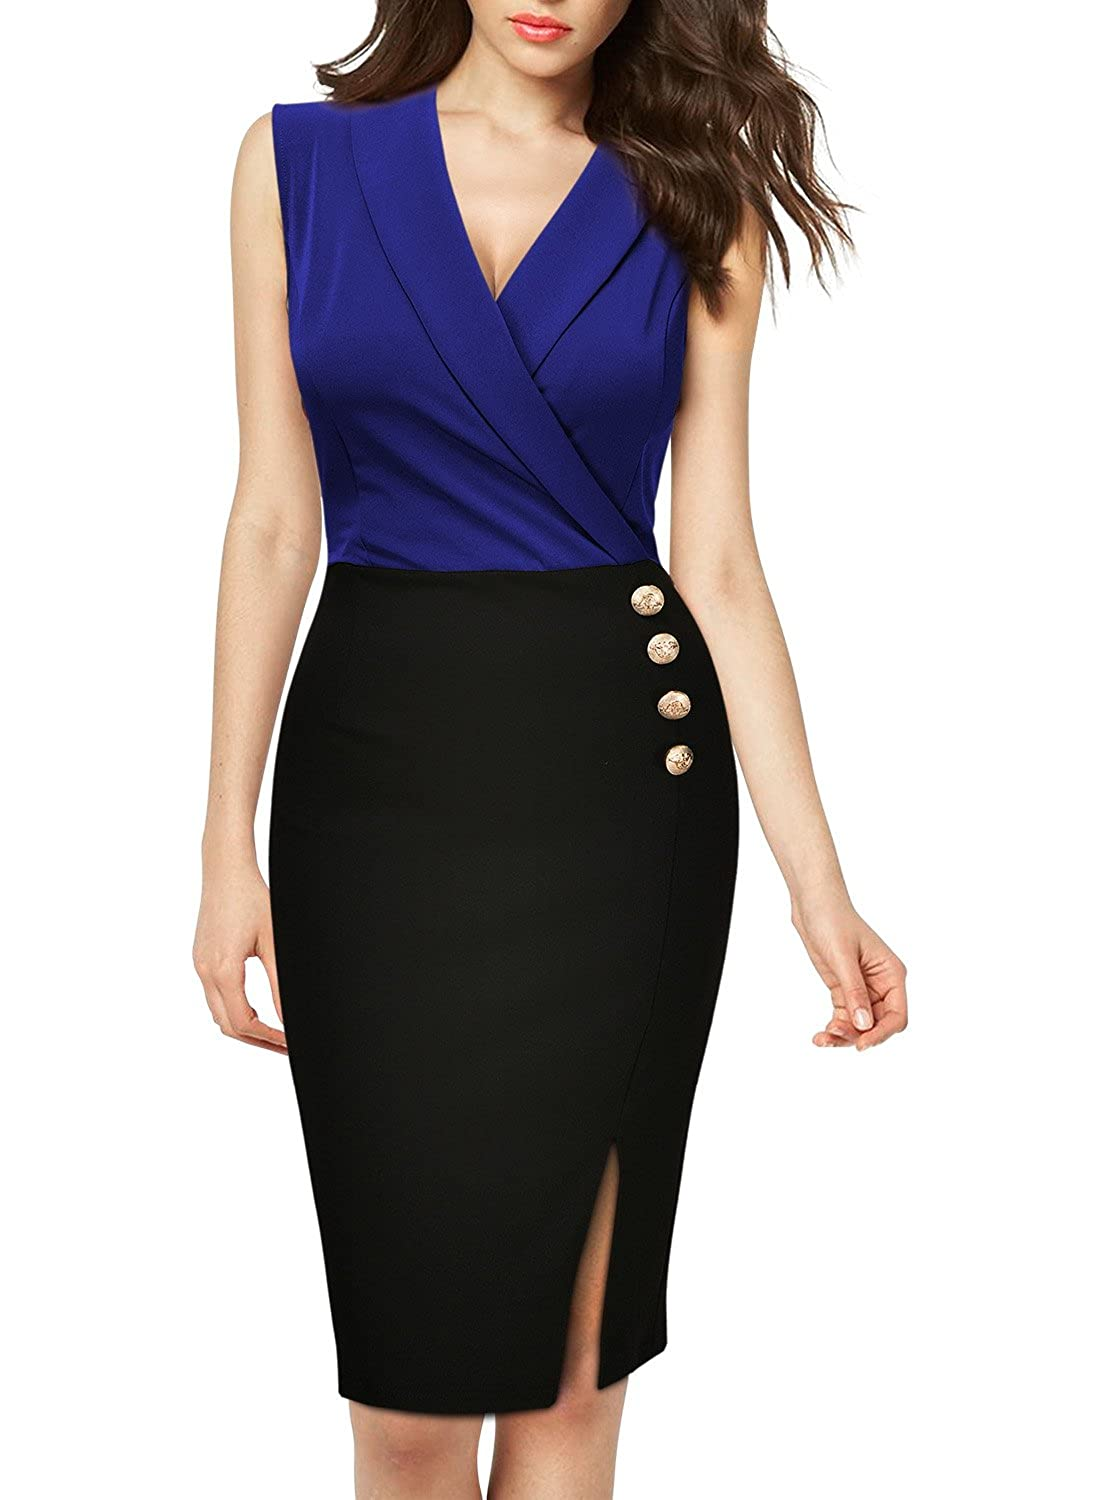 MissMay Women\'s Workwear Business Lapel Sleeveless Cocktail Party ...